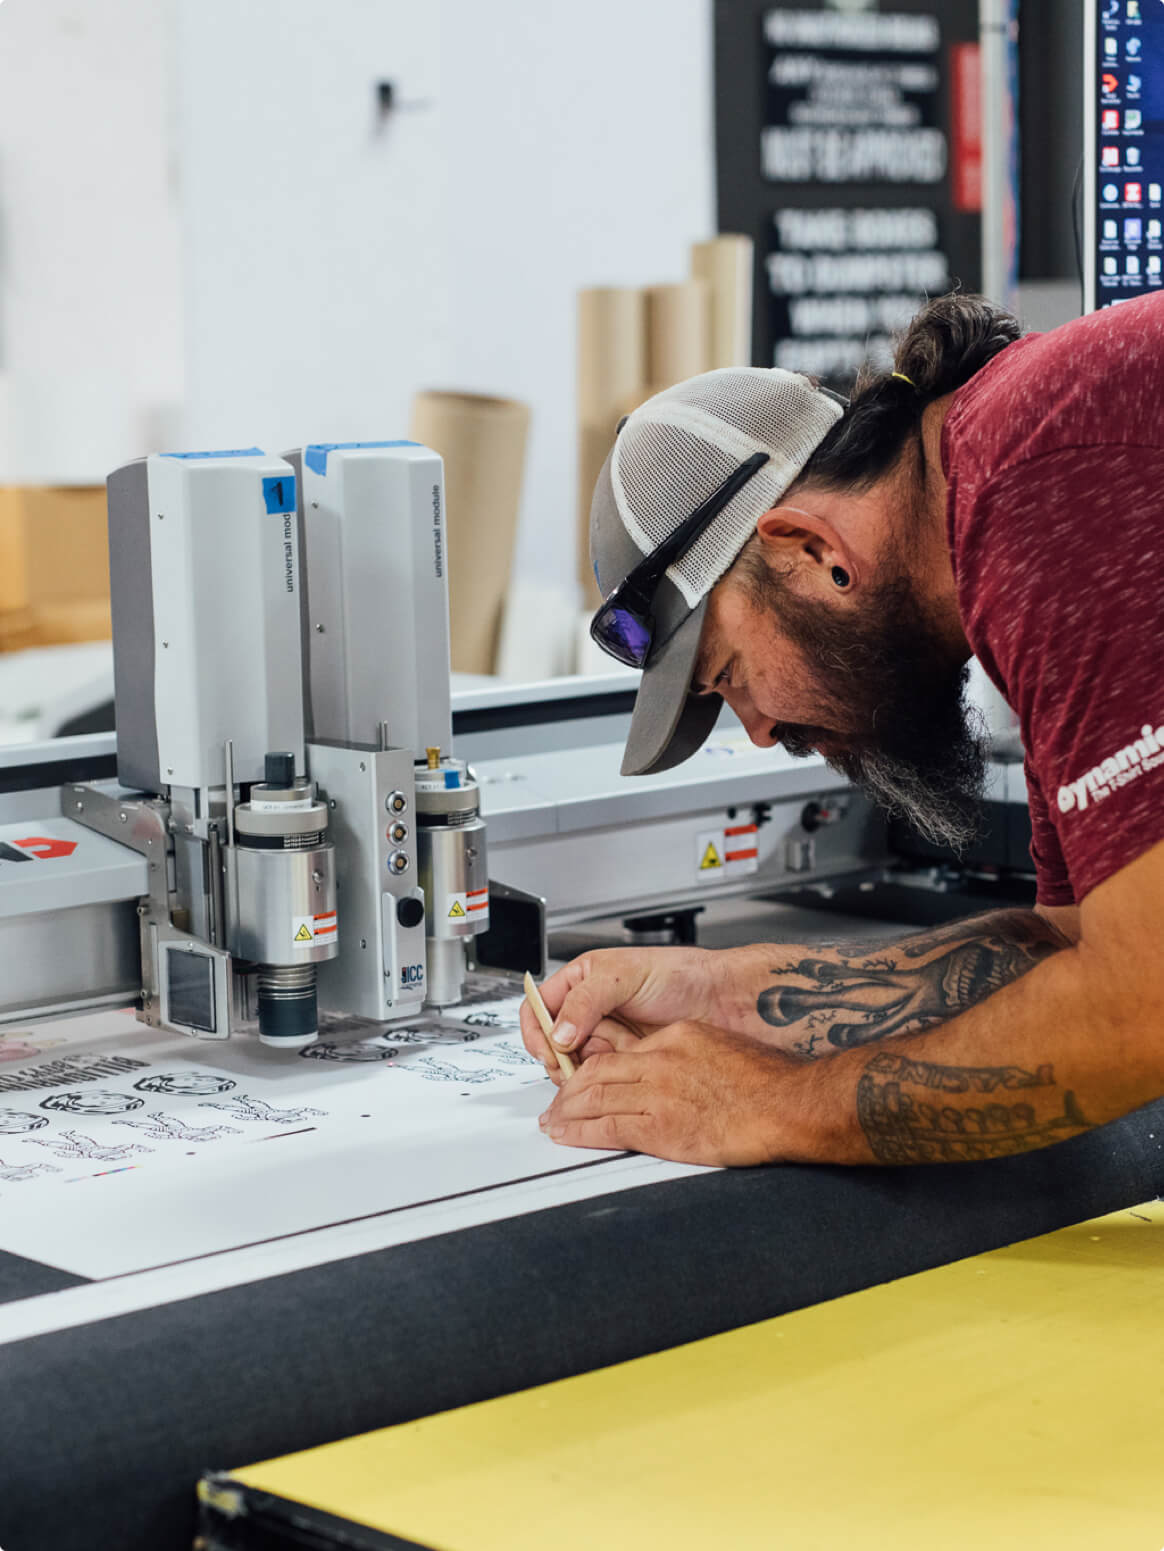 A Go Decals worker uses a pick to gently get die cut decals out of a printed sheet.